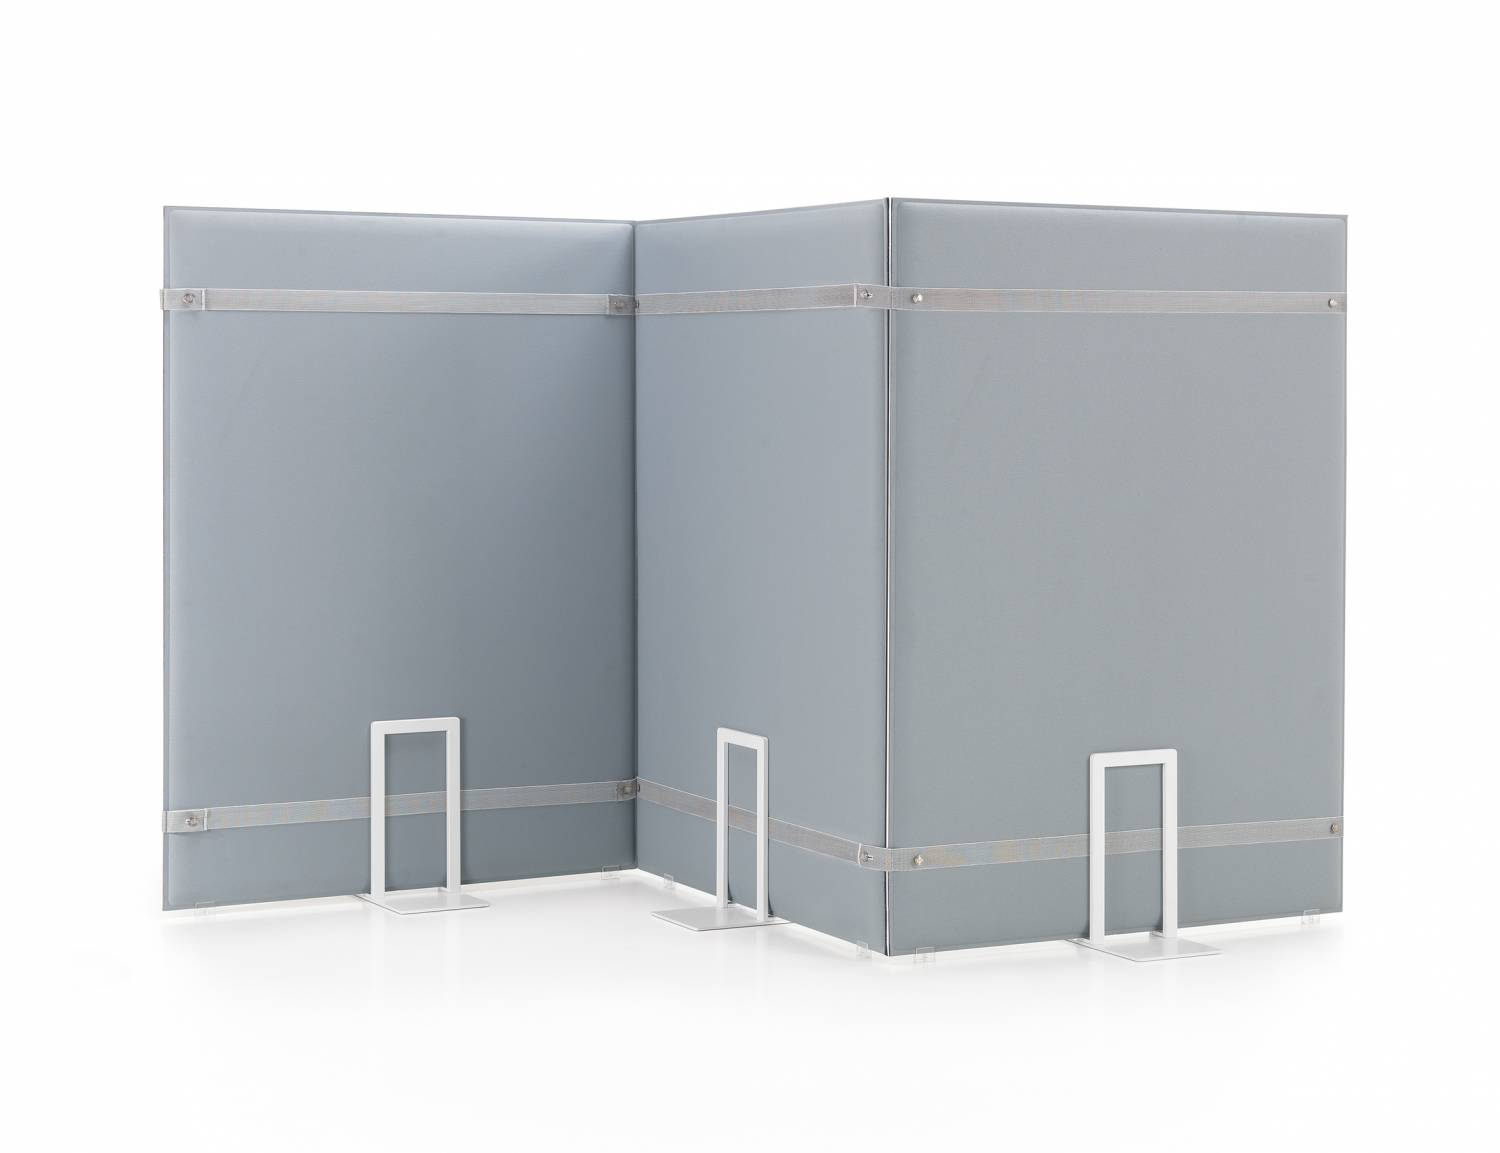 PLI-Oversized-Ocee-Freestanding-Sound-Absorbing-Panels-Example-Configuration